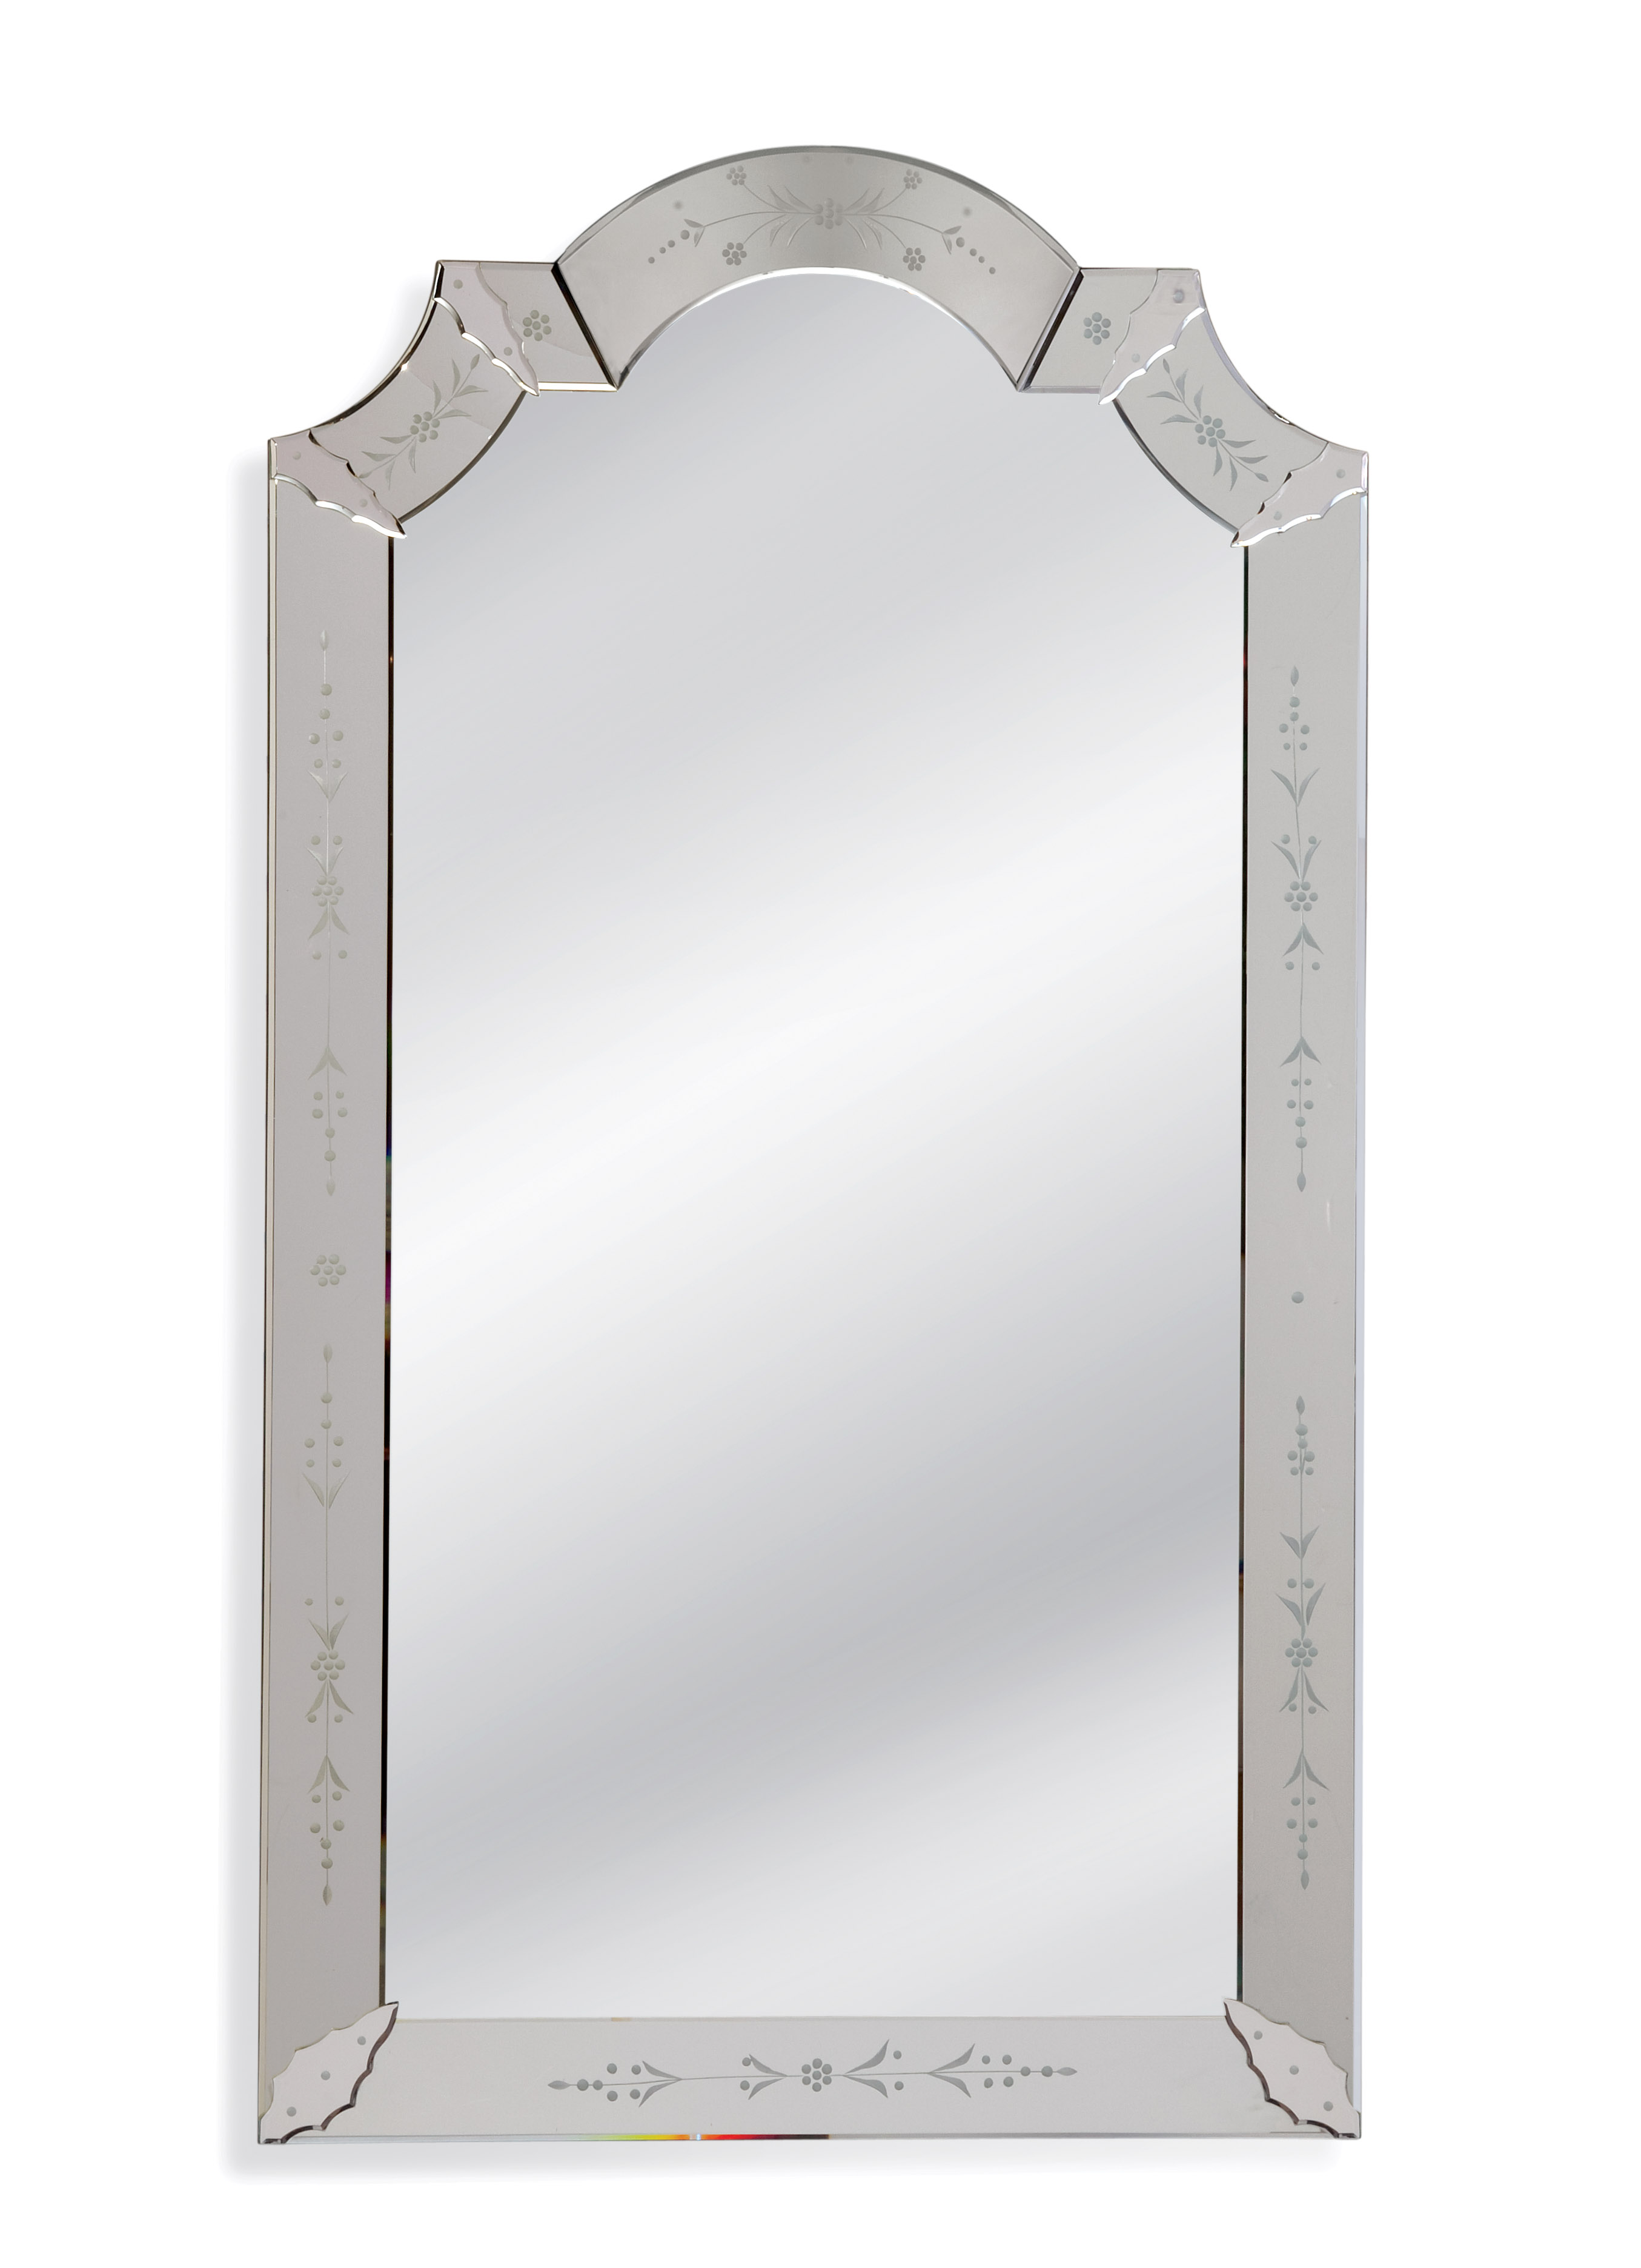 Old World Mabel Wall Mirror by Bassett Mirror at Alison Craig Home Furnishings